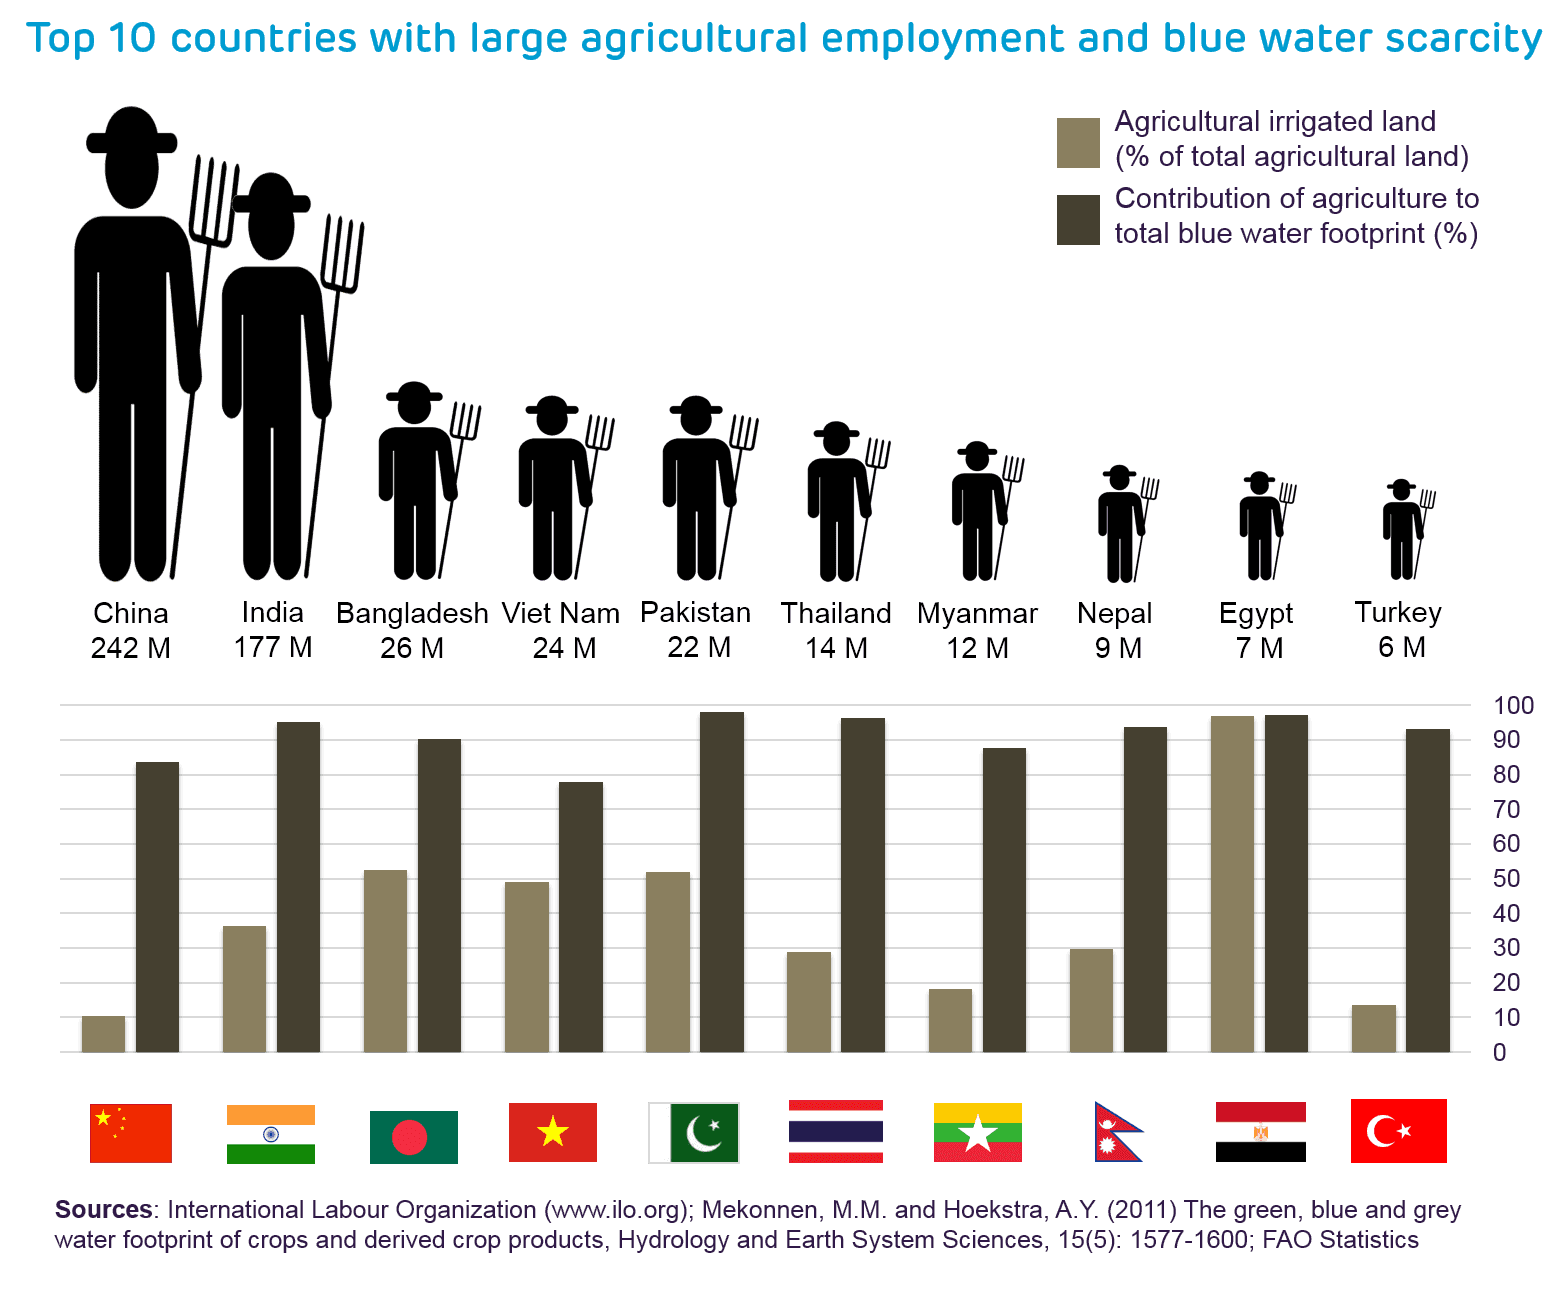 2_Top_10_countries_with_large_agri_employment